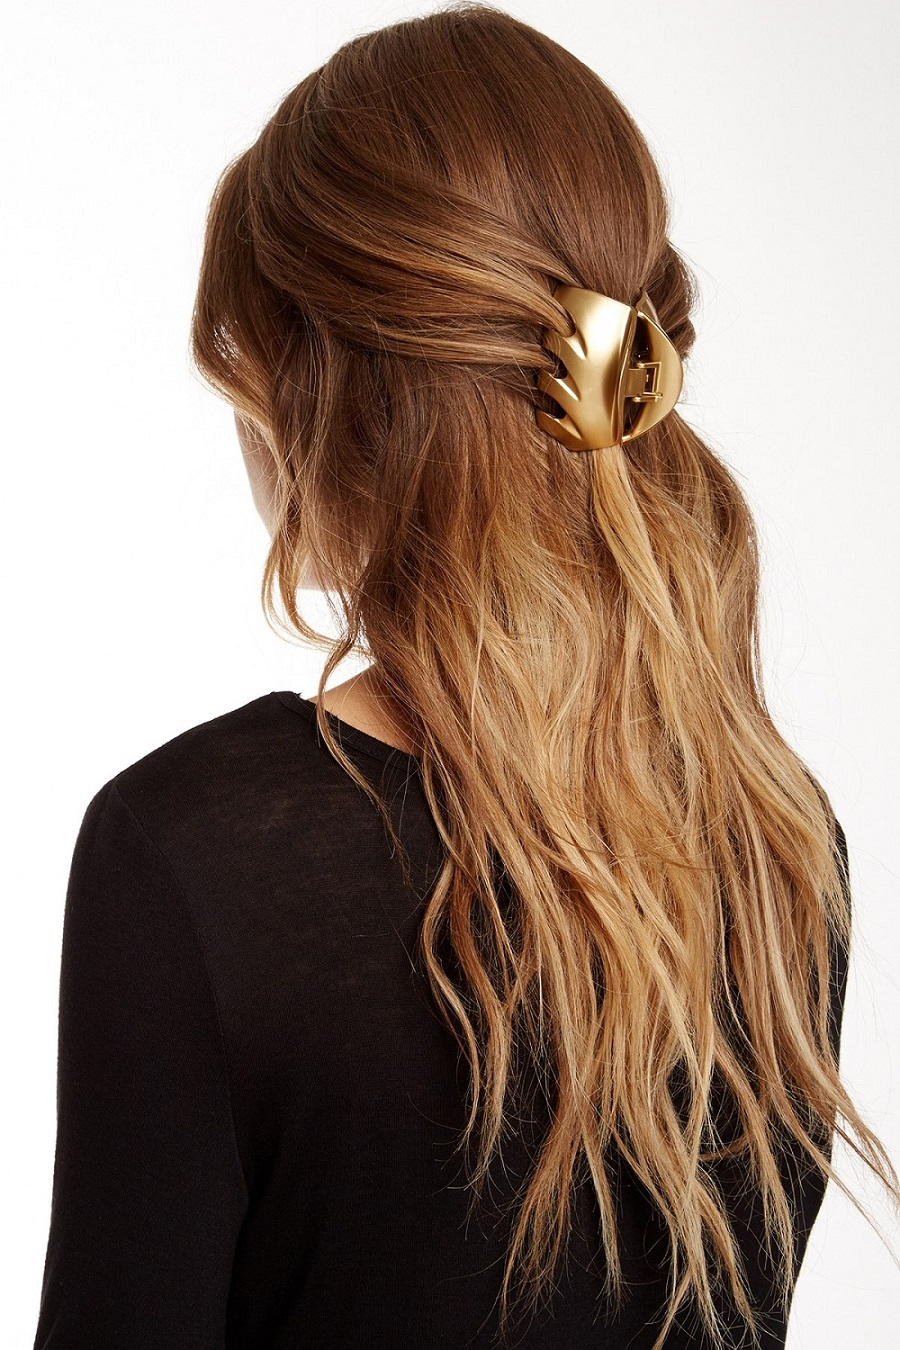 how-to-style-hair-accessories-claw-clips-butterfly-banana-mini-halfup-gold-messy.jpg